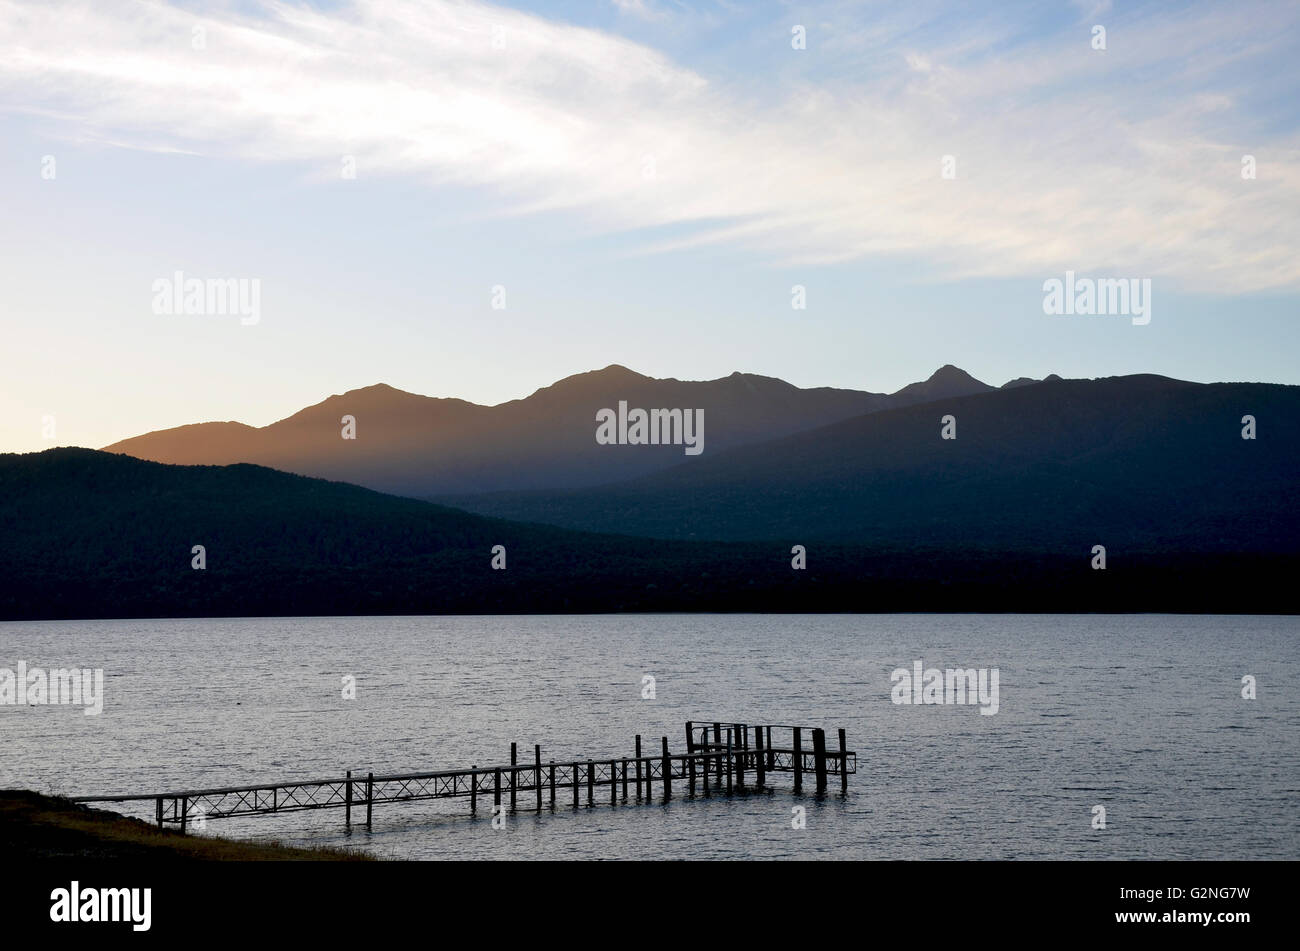 Dusk and wispy clouds over Te Anau lake, jetty and mountains in the pristine wilderness of fiordland, New Zealand - Stock Image